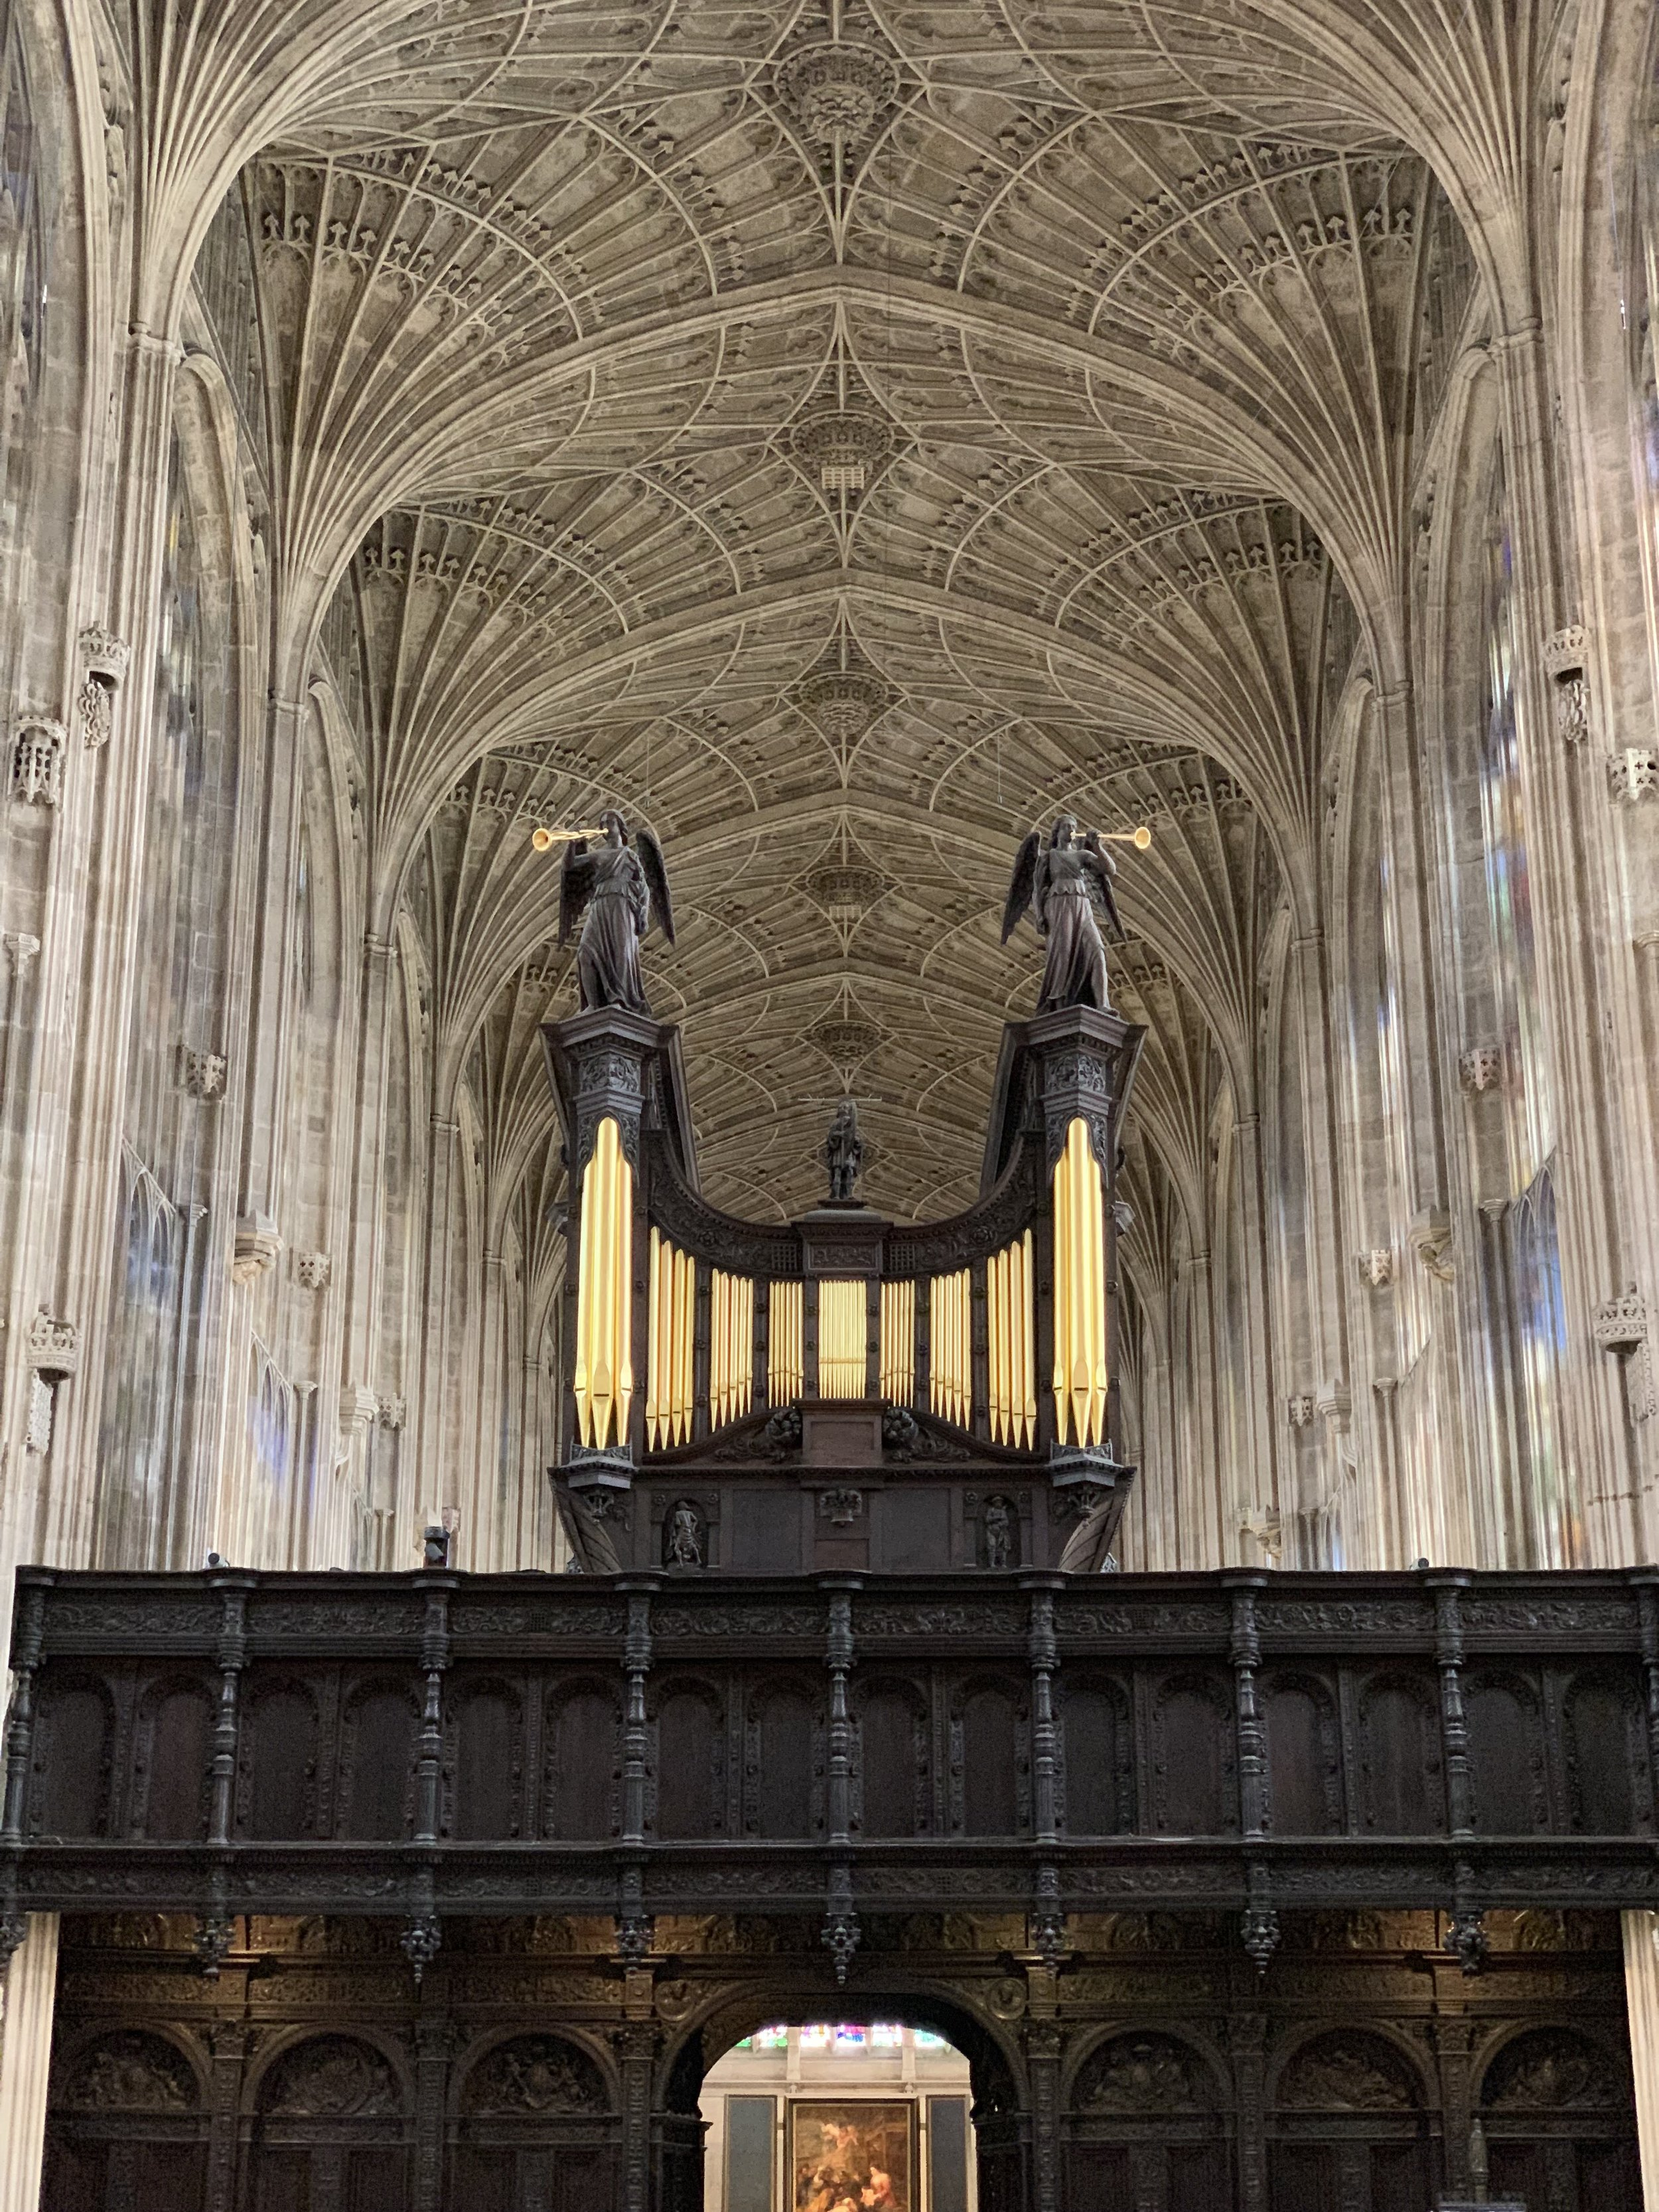 King's College Chapel's Vaulted Ceiling